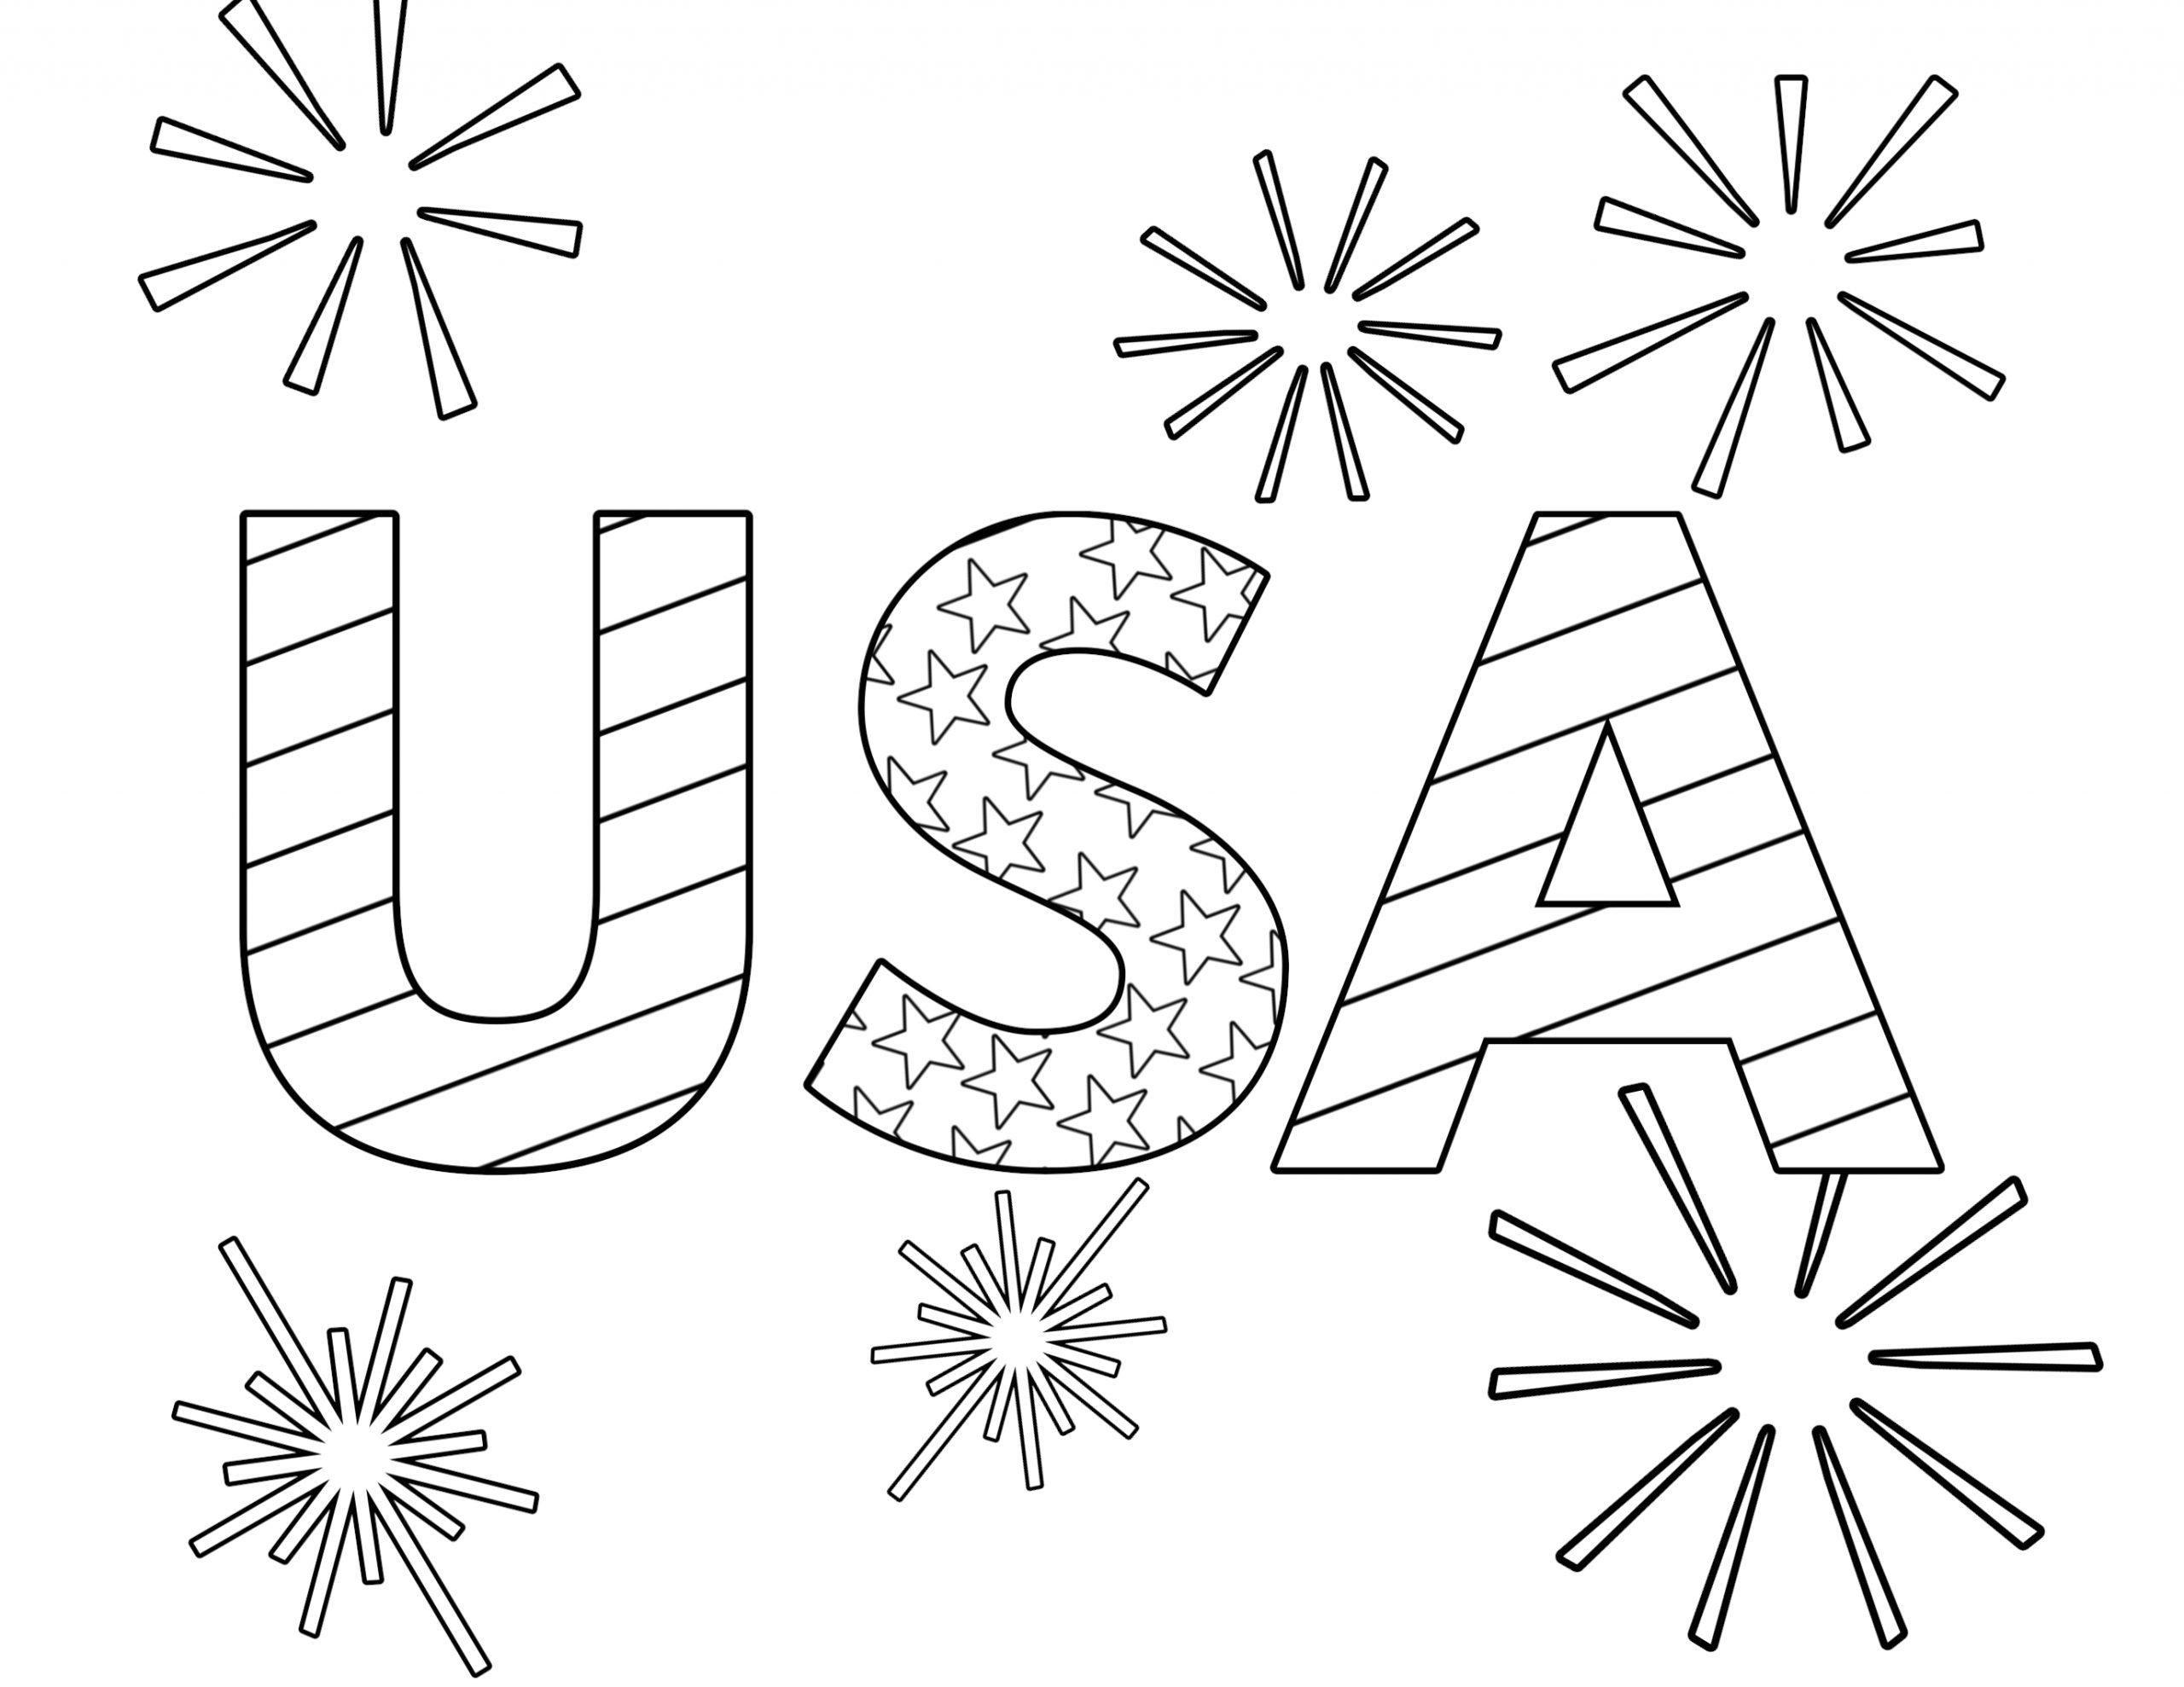 4th Of July Coloring Pages Free to Print Free Printable 4th Of July Coloring Pages Paper Trail Design